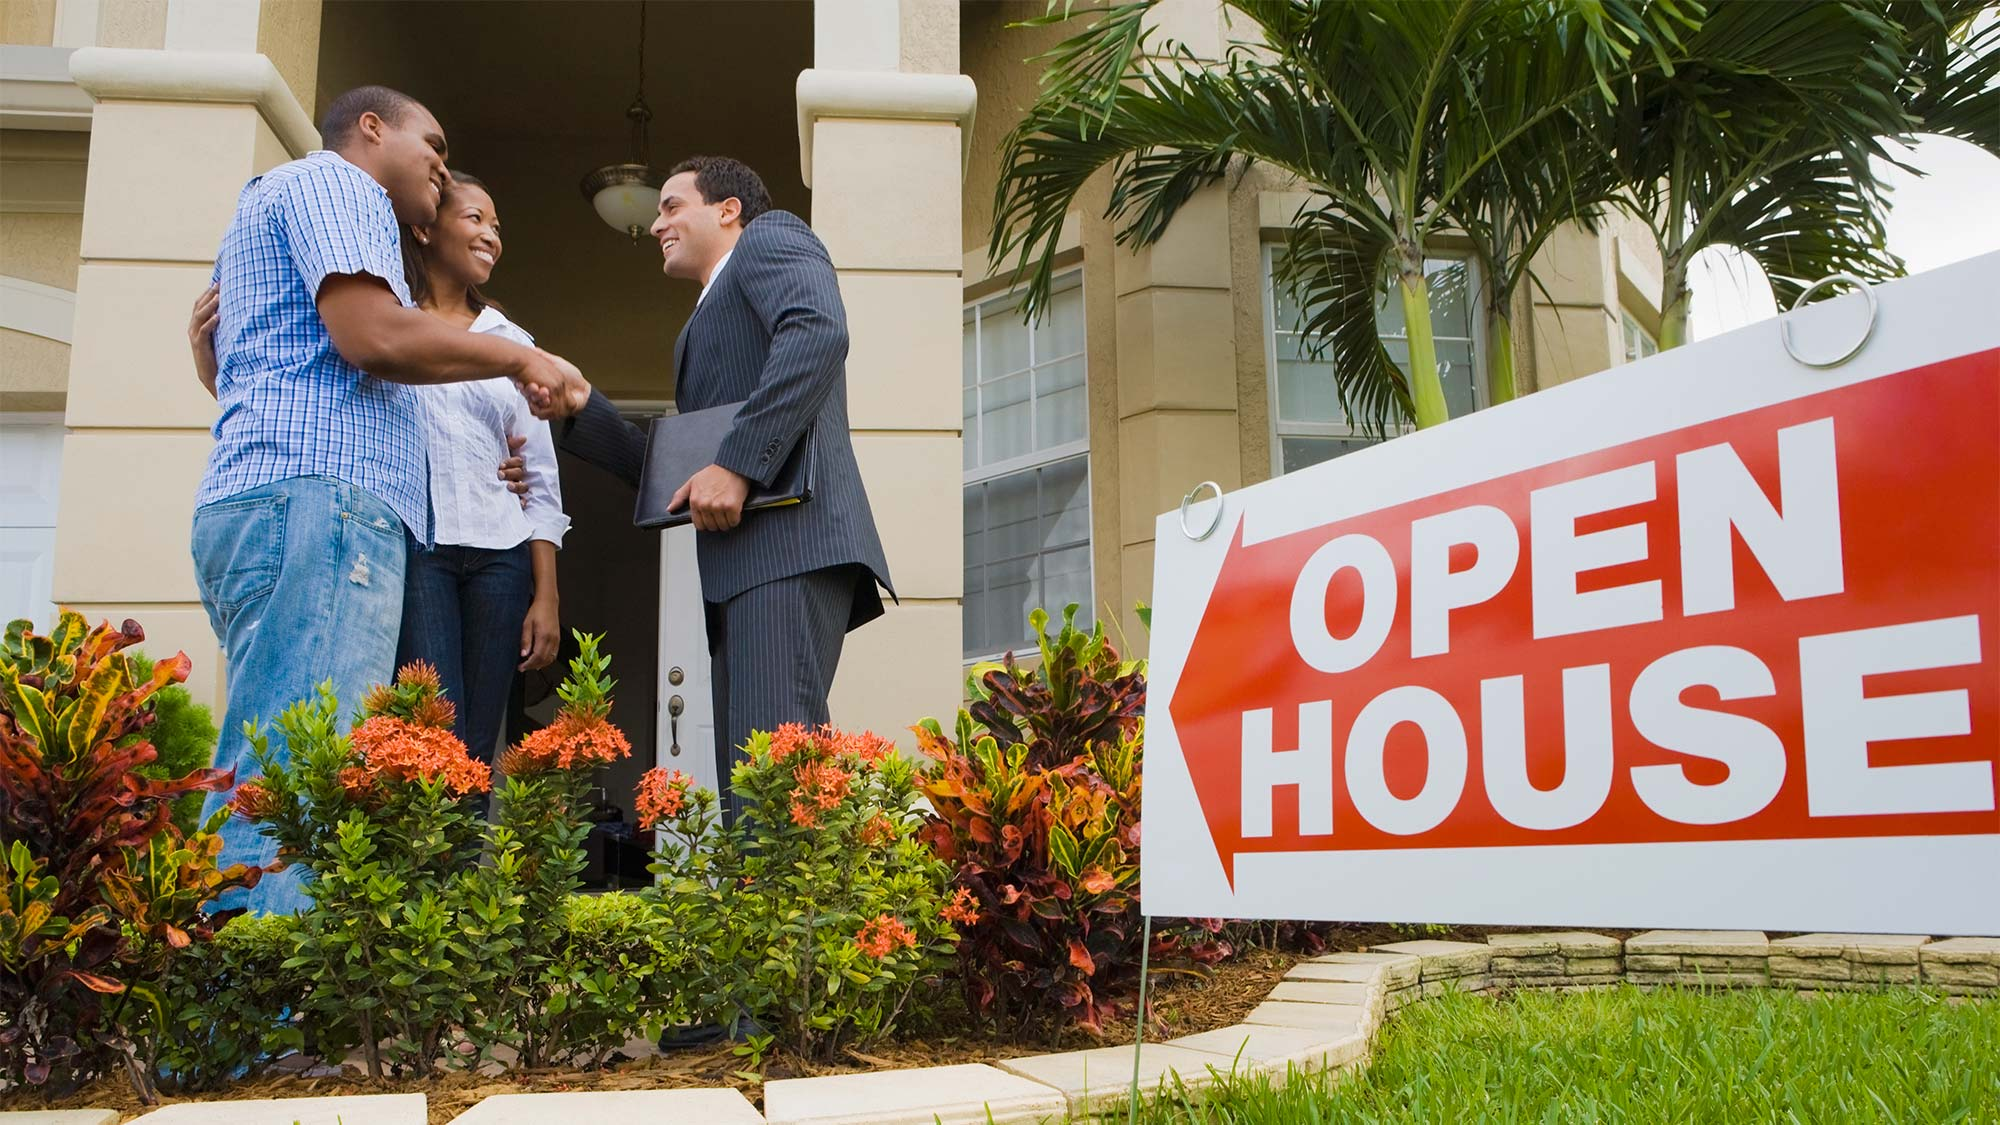 How to Become a Real Estate Agent in 5 Steps